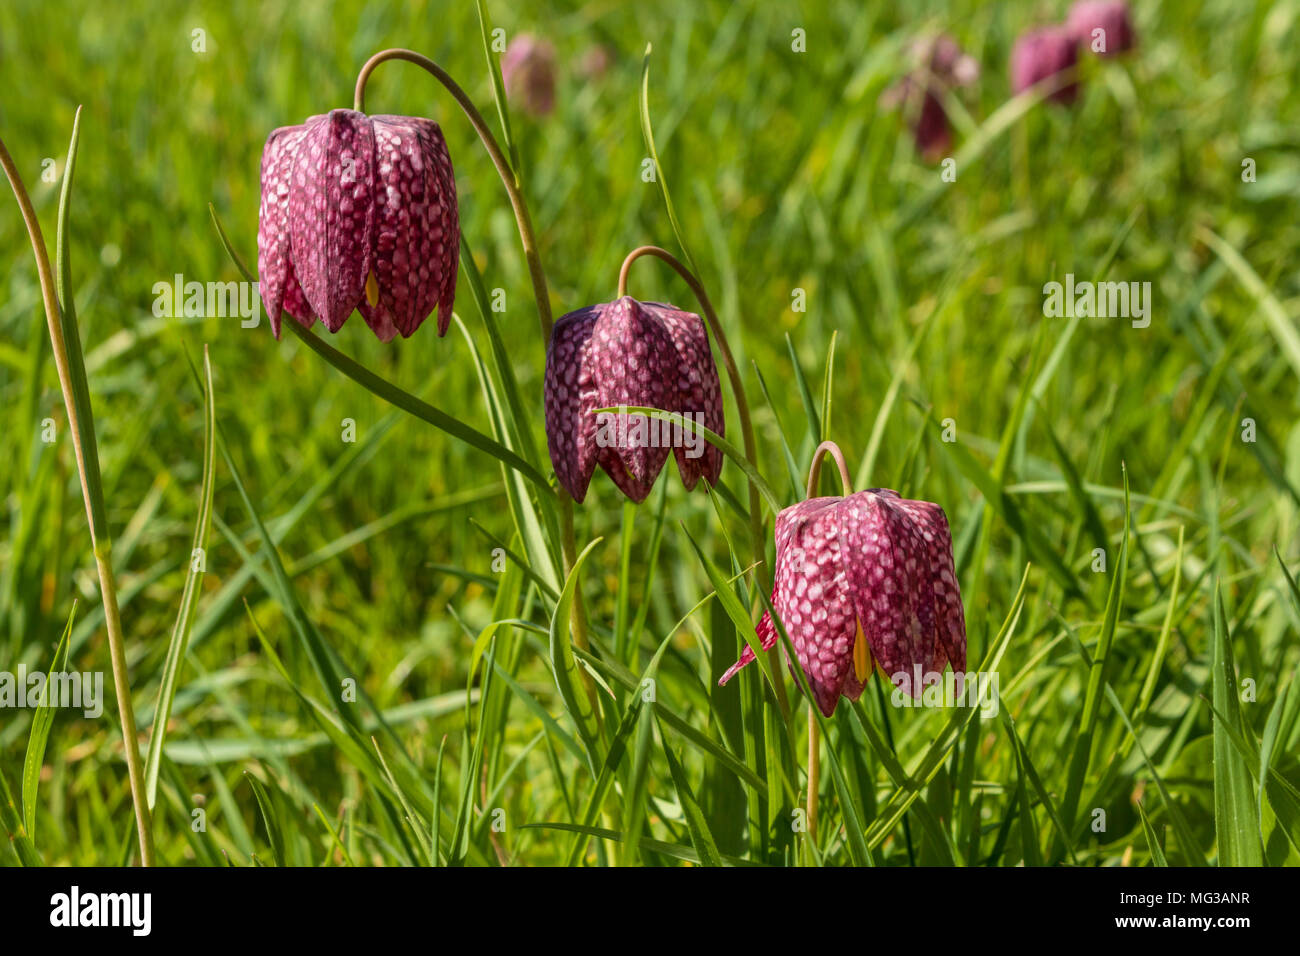 Fritillaria meleagris or snakes head fritillary wild flowers which ...